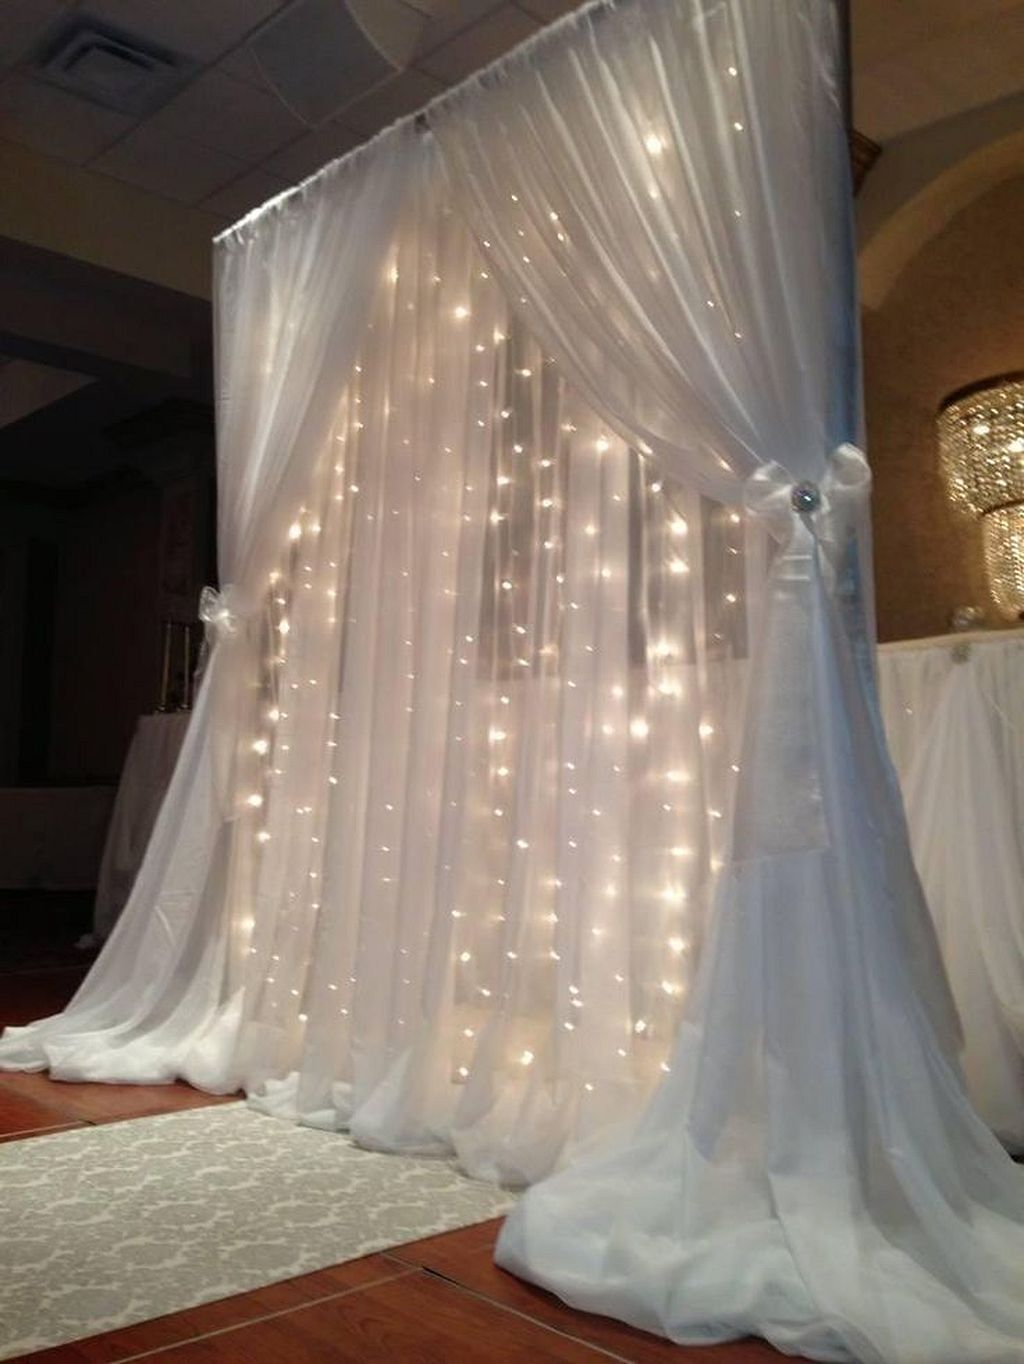 Wedding decorations tulle and lights  Pin by Laverna Mckinnis on decorations  Pinterest  Wedding